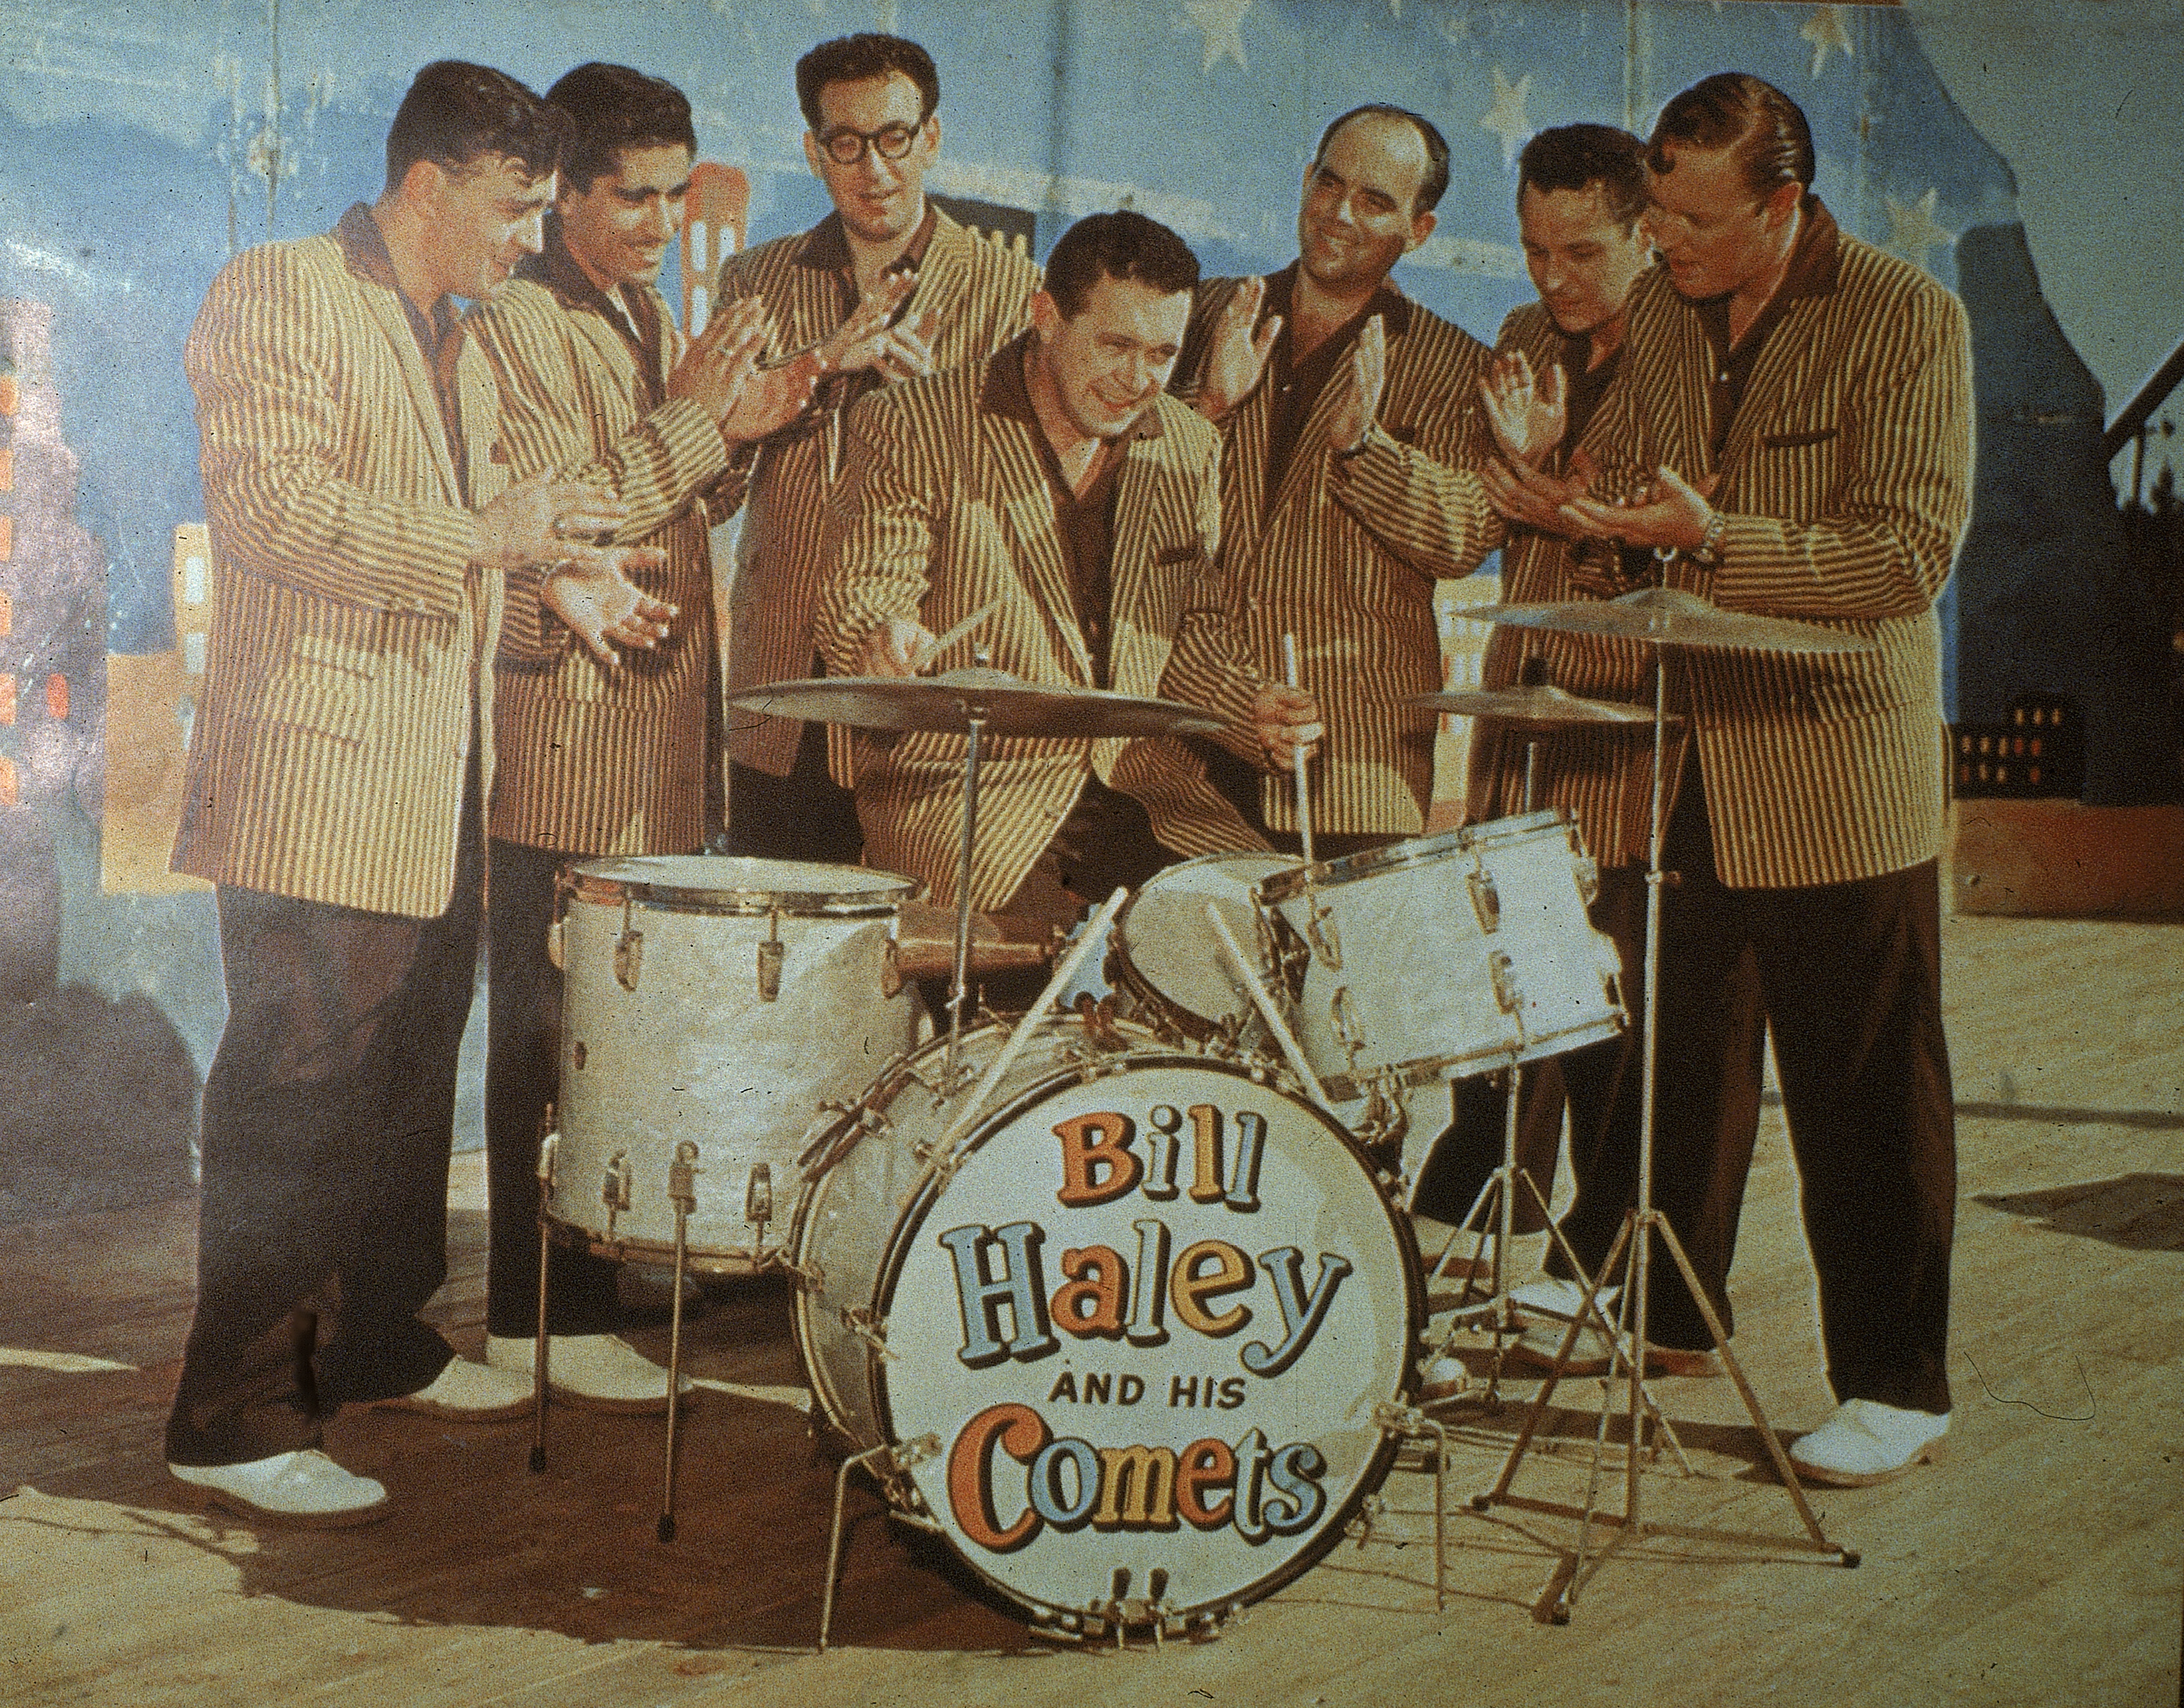 Promotional portrait of American rock and roll band Bill Haley & His Comets as they wear matching jackets, black pants, and white shoes, January 1957. Group leader Bill Haley (1925 - 1981) sits in the center playing the drums. (Photo by Hulton Archive/Getty Images)